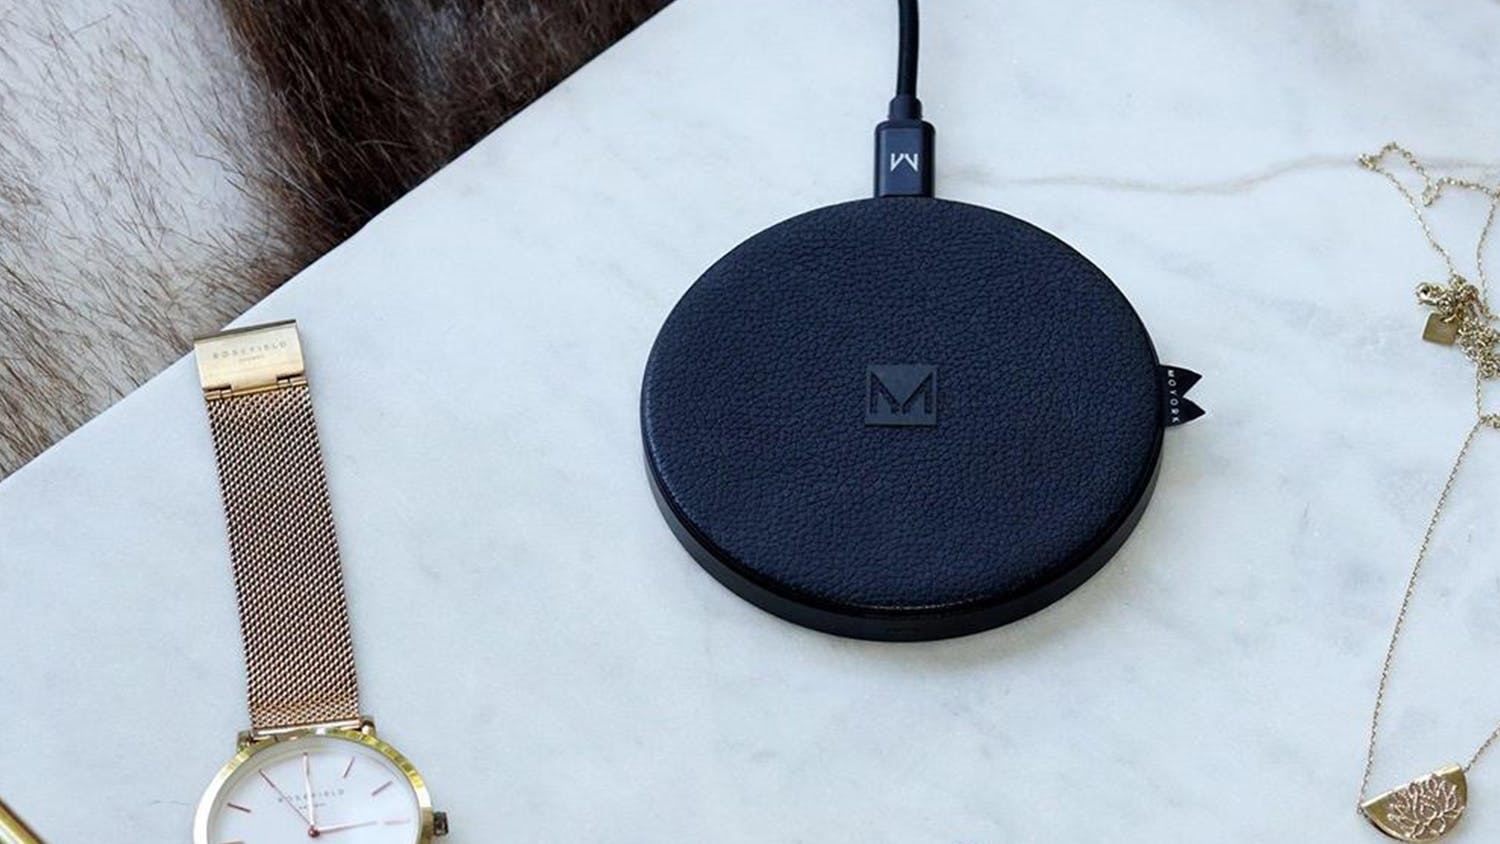 Moyork 10W Qi Fast Wireless Charging Pad - Raven Black Leather